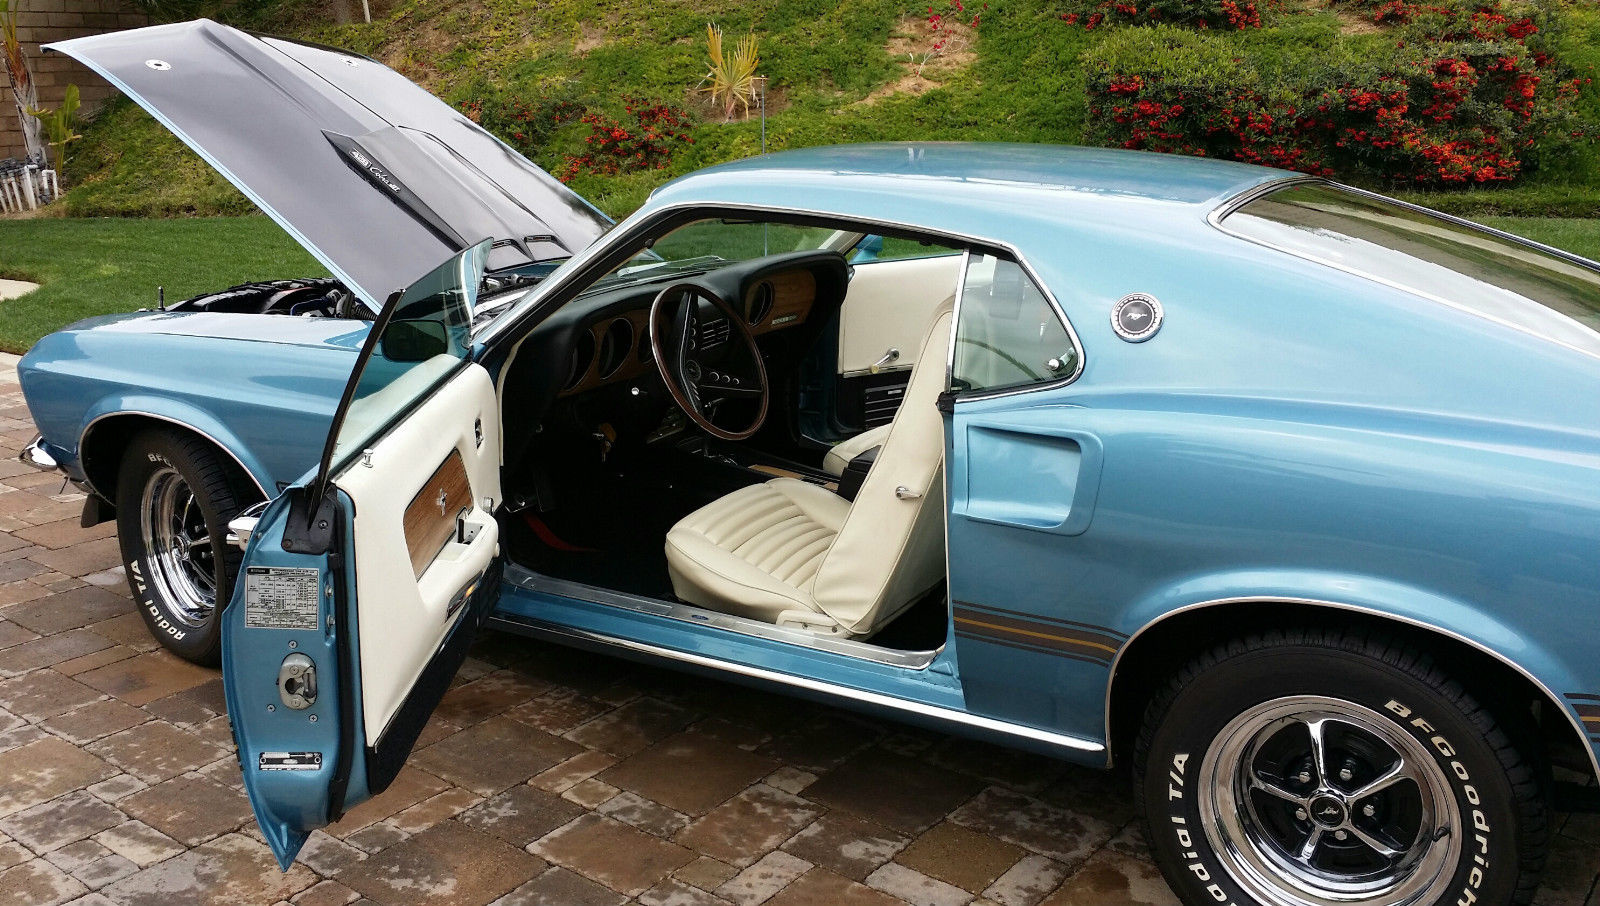 mach 1 interior related keywords suggestions 1969 mustang mach 1 - 1969 Ford Mustang Fastback Interior